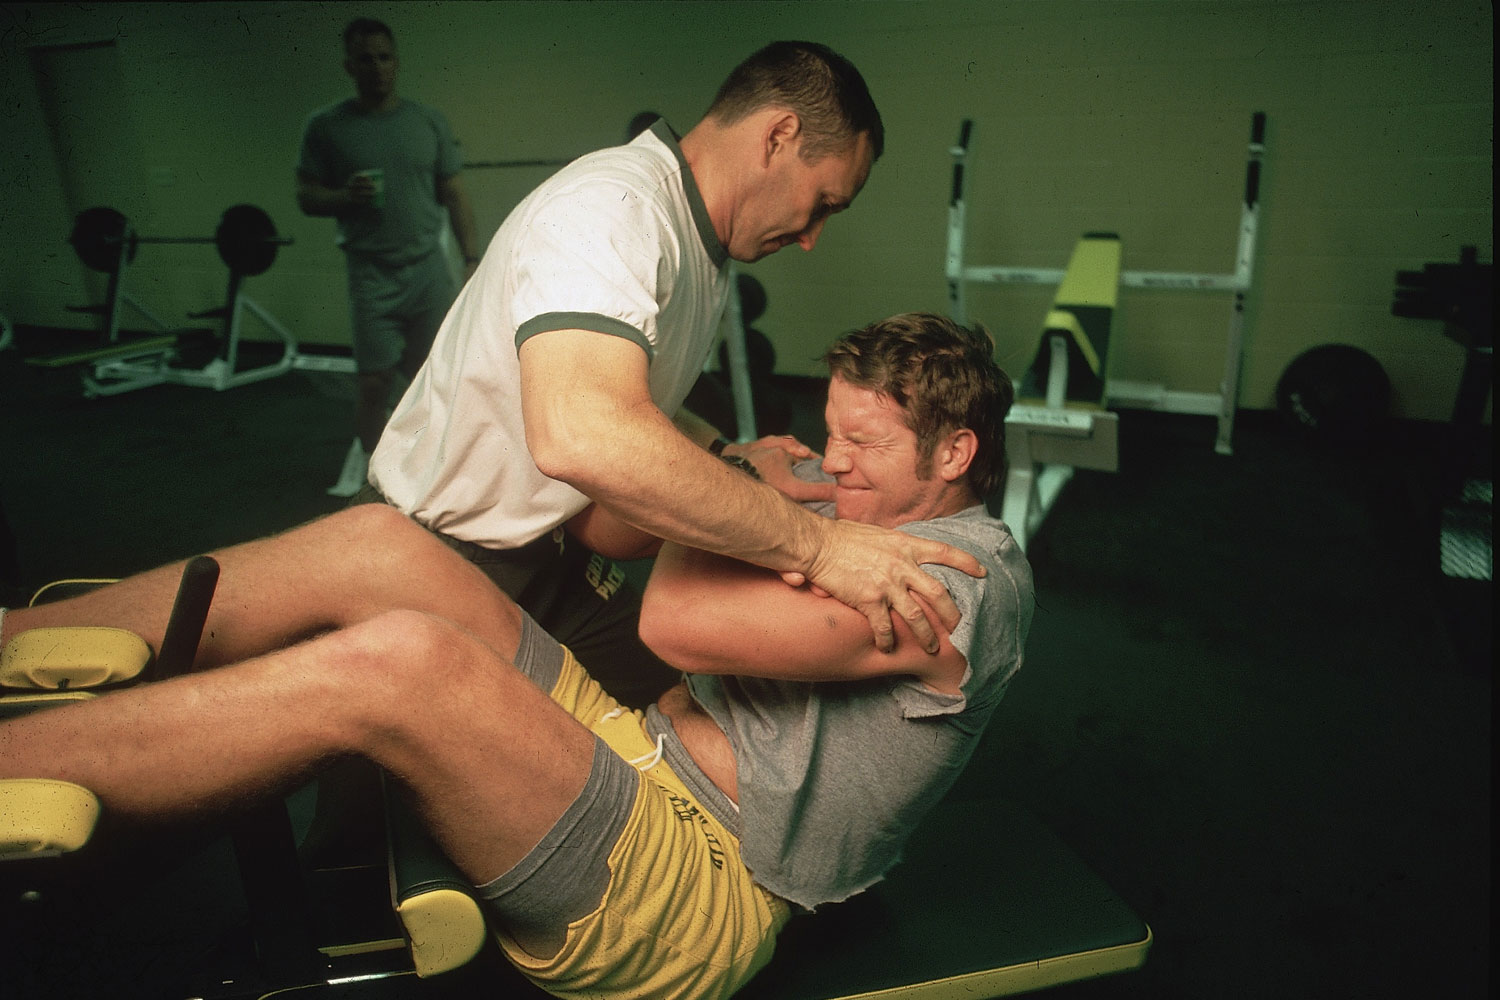 Green Bay Packers quarterback Brett Favre working out with strength and conditioning coach Kent Johnston.